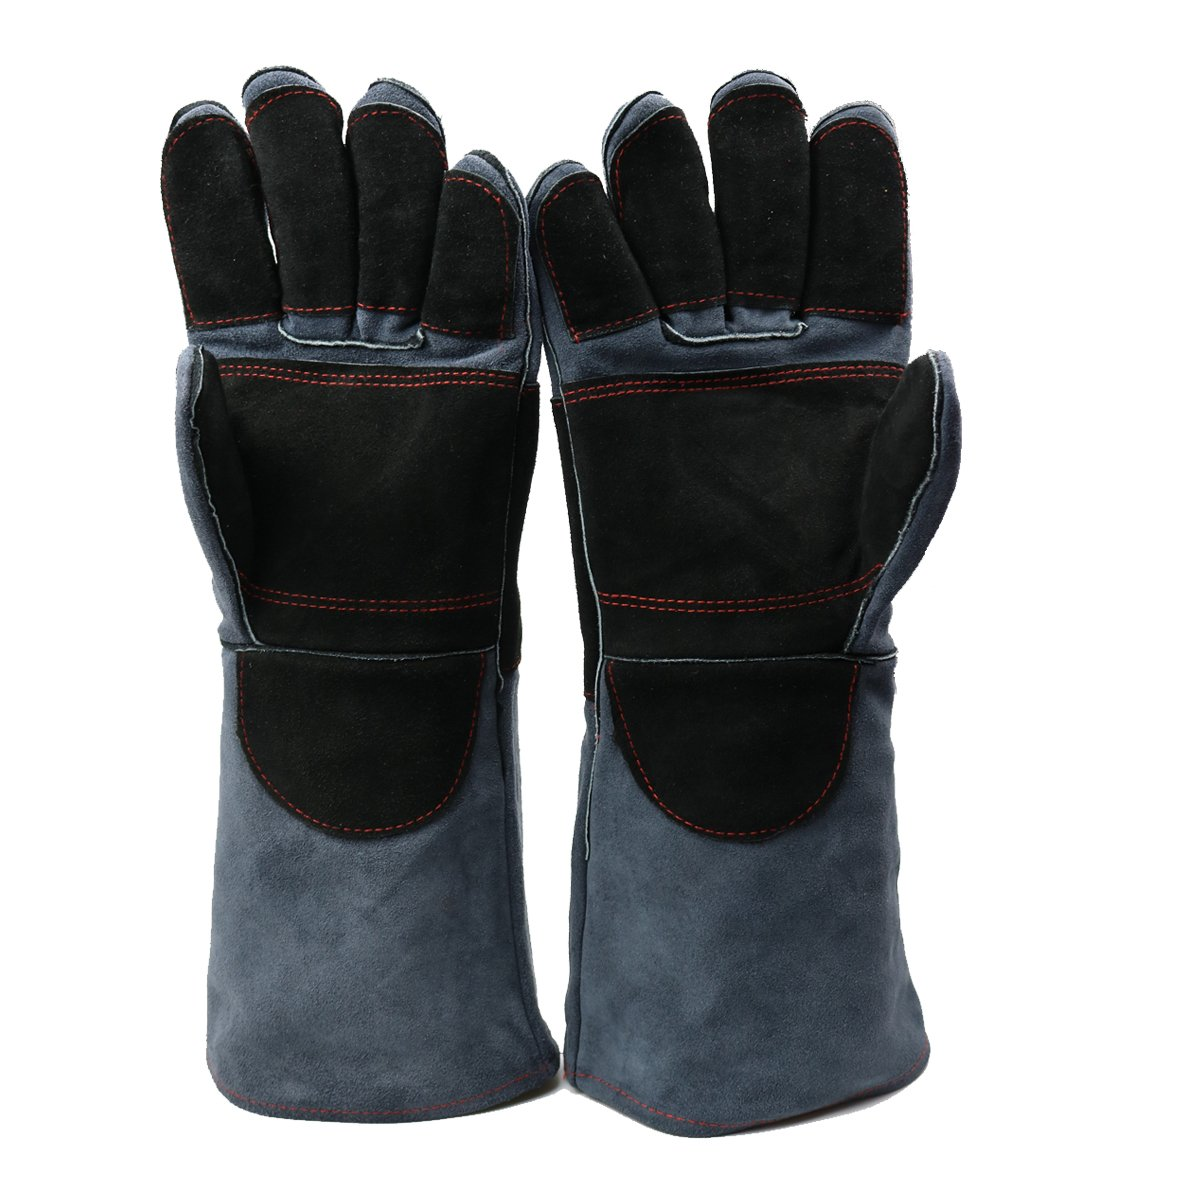 Arc Welding Gloves Dourr Forging Gloves Heat Fire Resistant Mittens For Mig Tig Welders Oven Grill Fireplace Hot Pan Stove Bbq Welders Gloves 16 Inch Black Gray Buy Online In Malta Missing Category Value Products In Malta